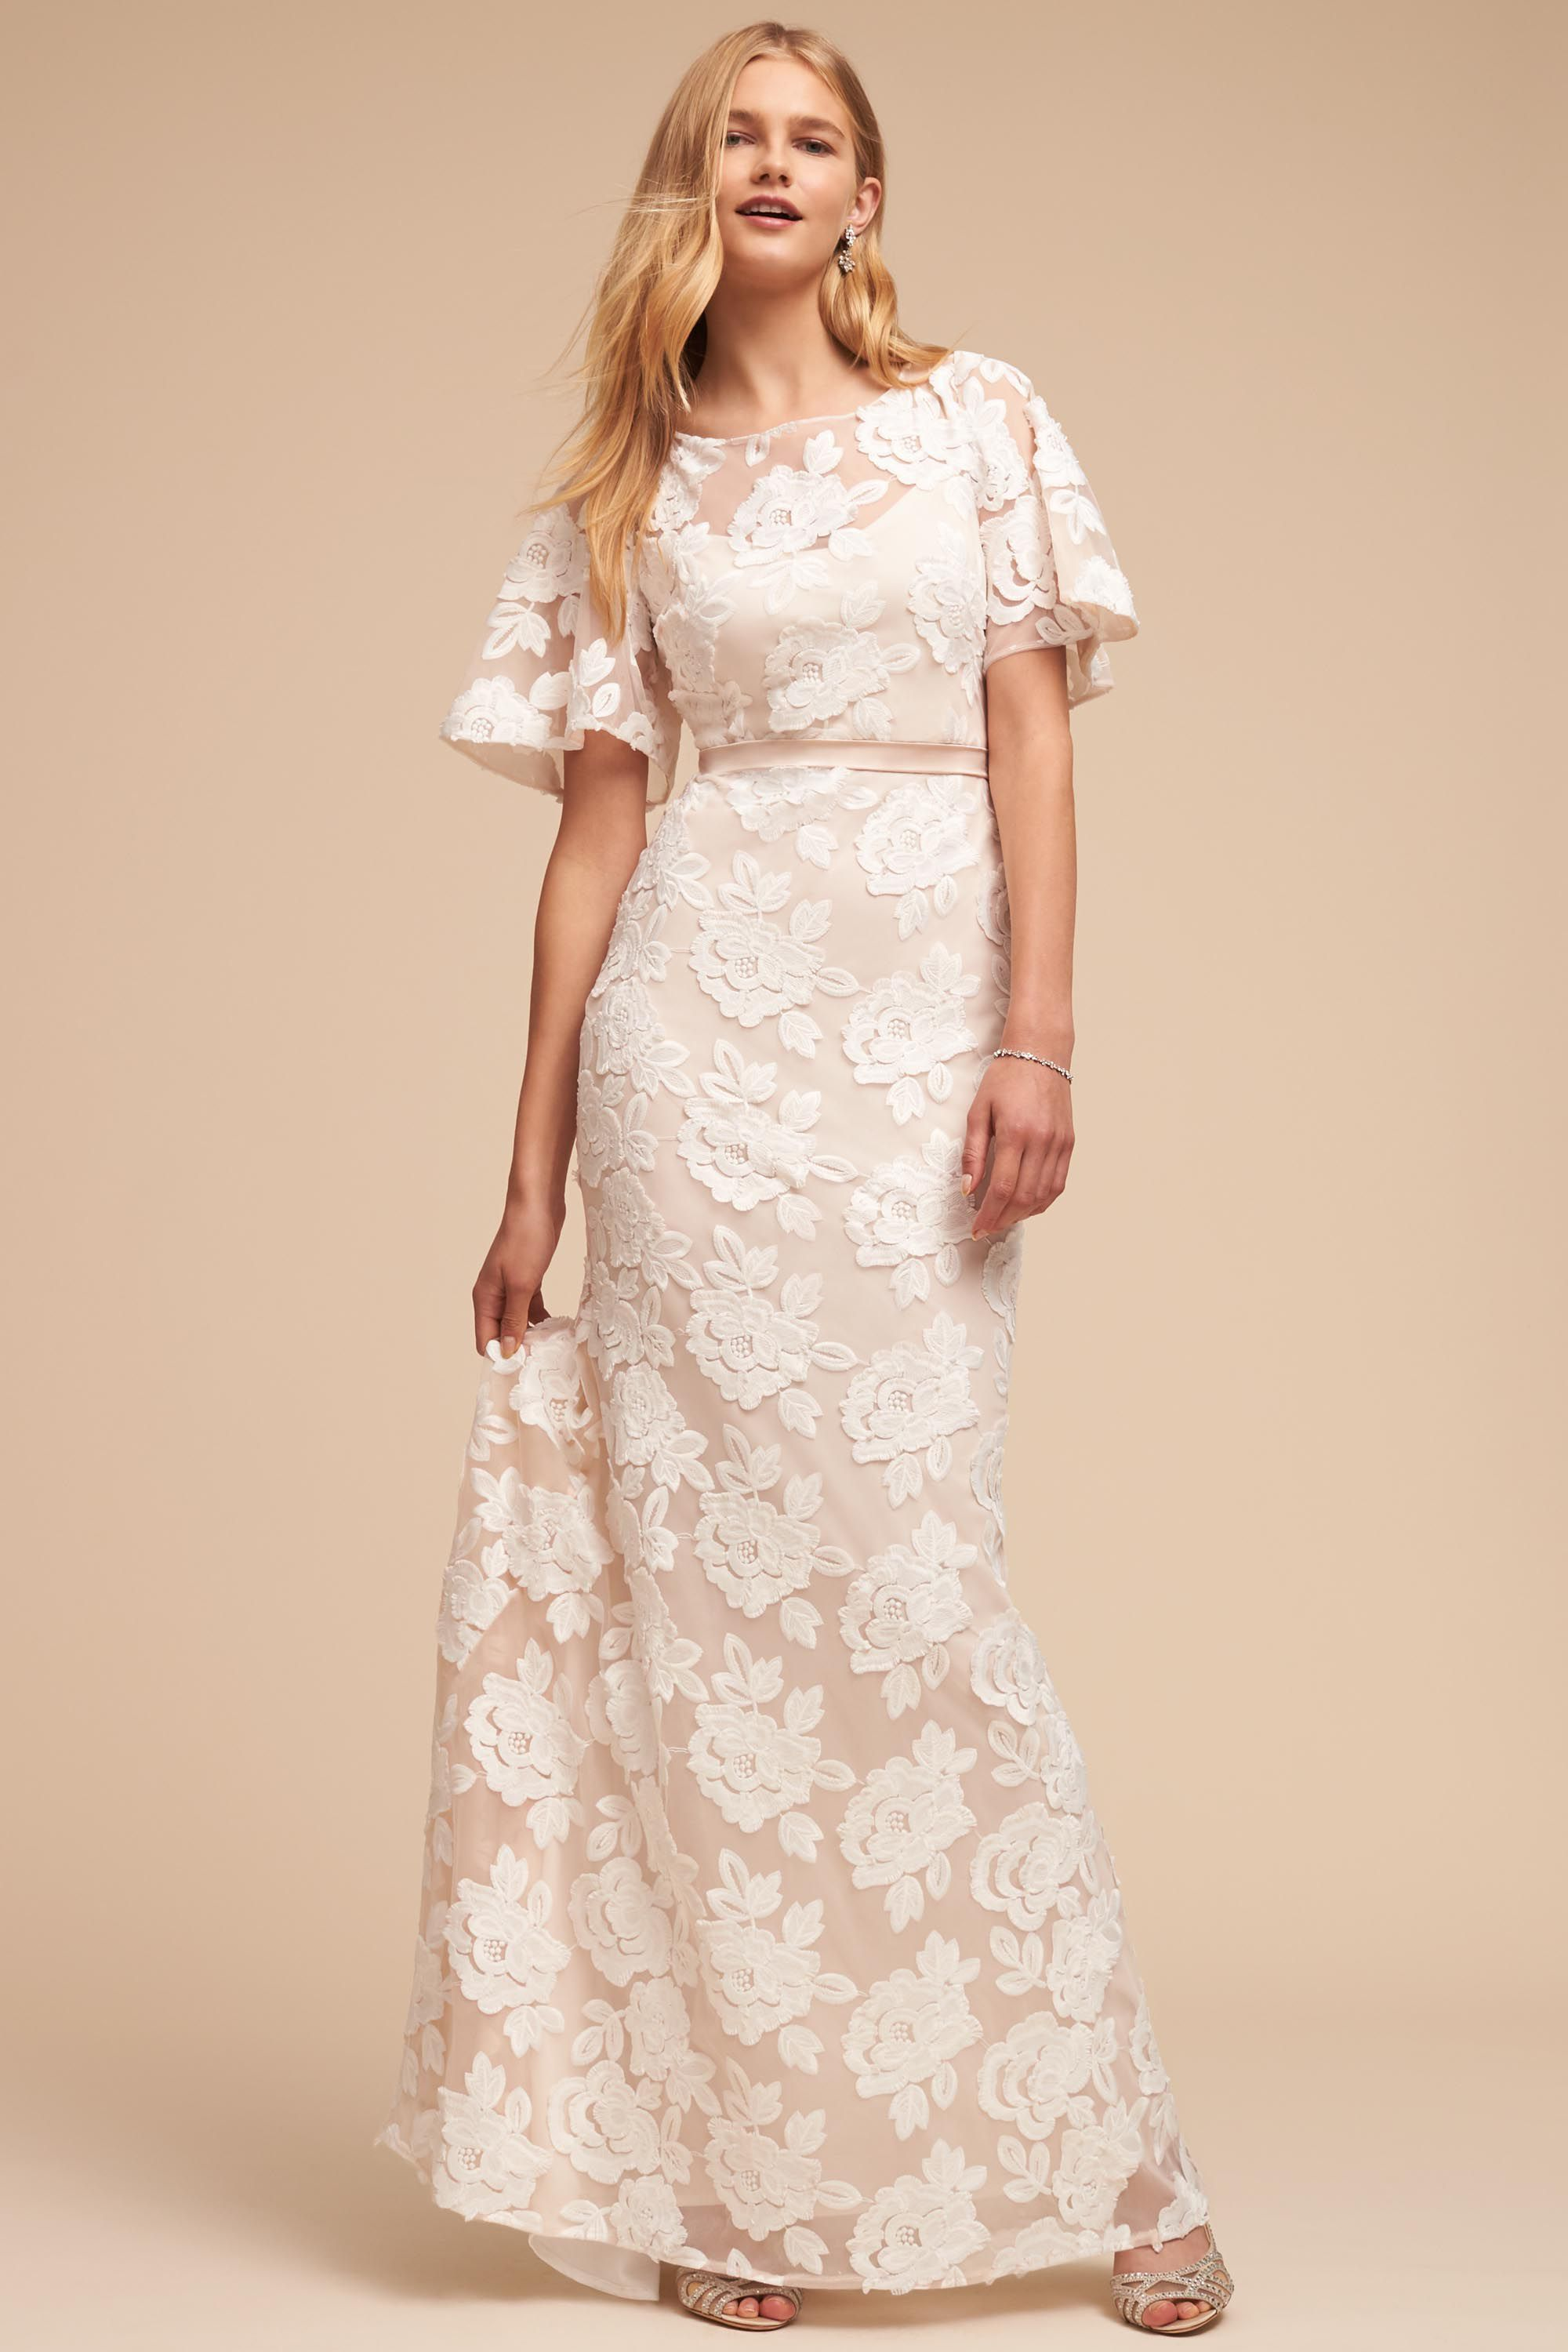 Anthropologie Wedding Dresses Used For Sale